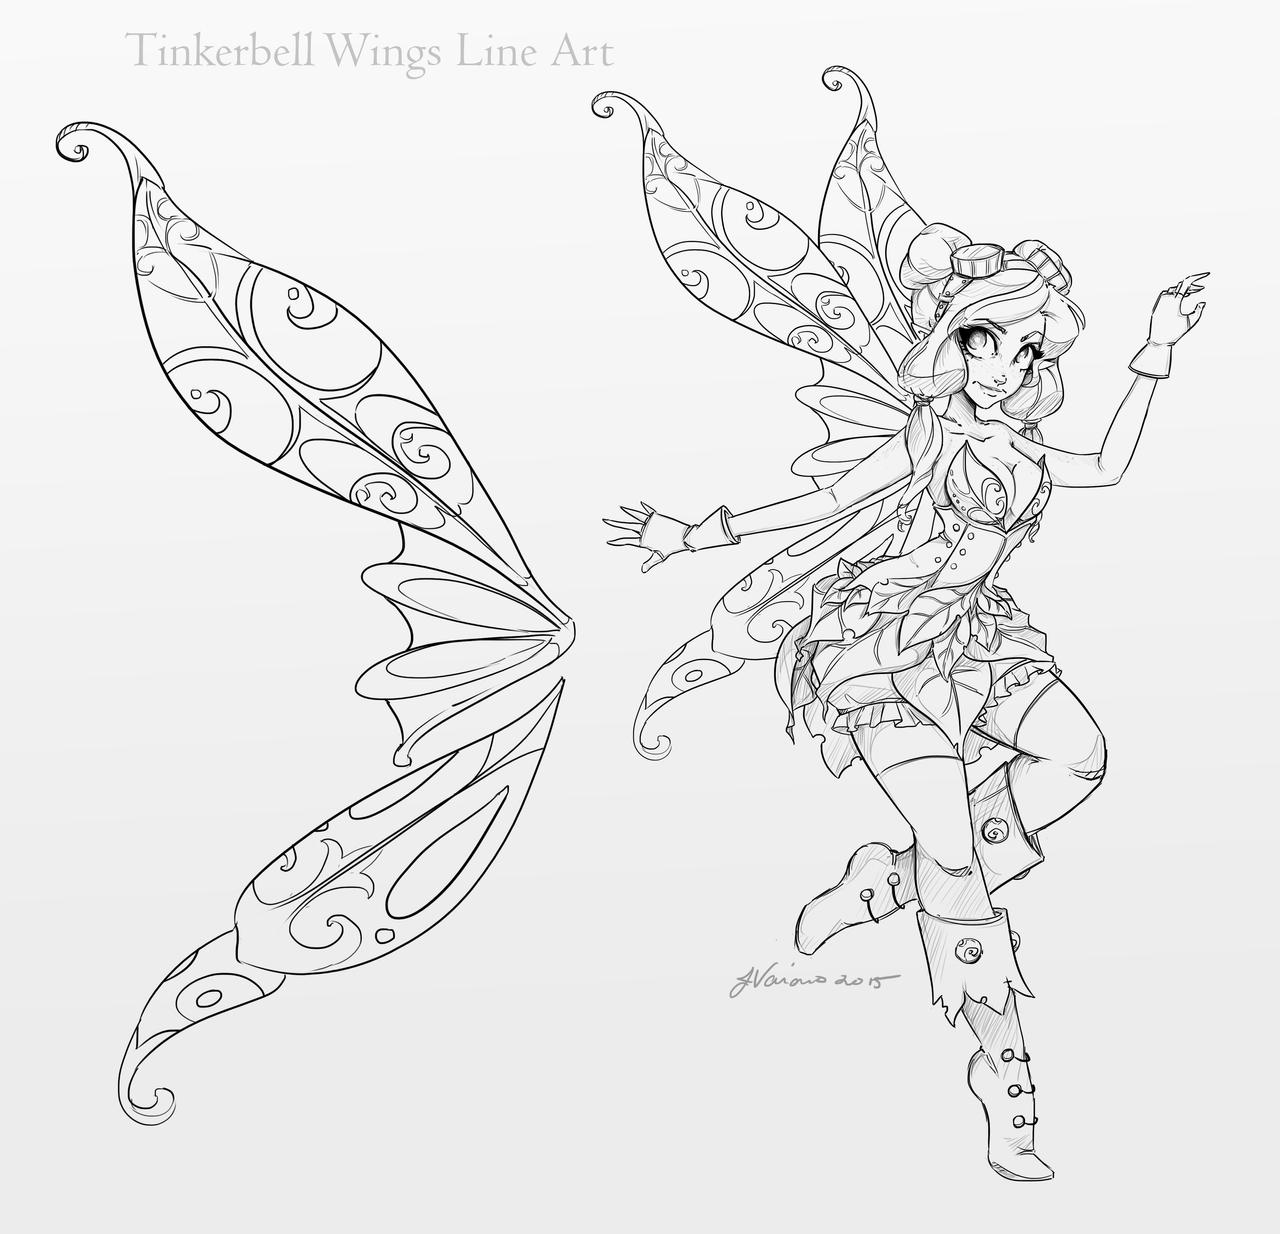 Line Drawing Wings : Tinkerbell wings line art by noflutter on deviantart